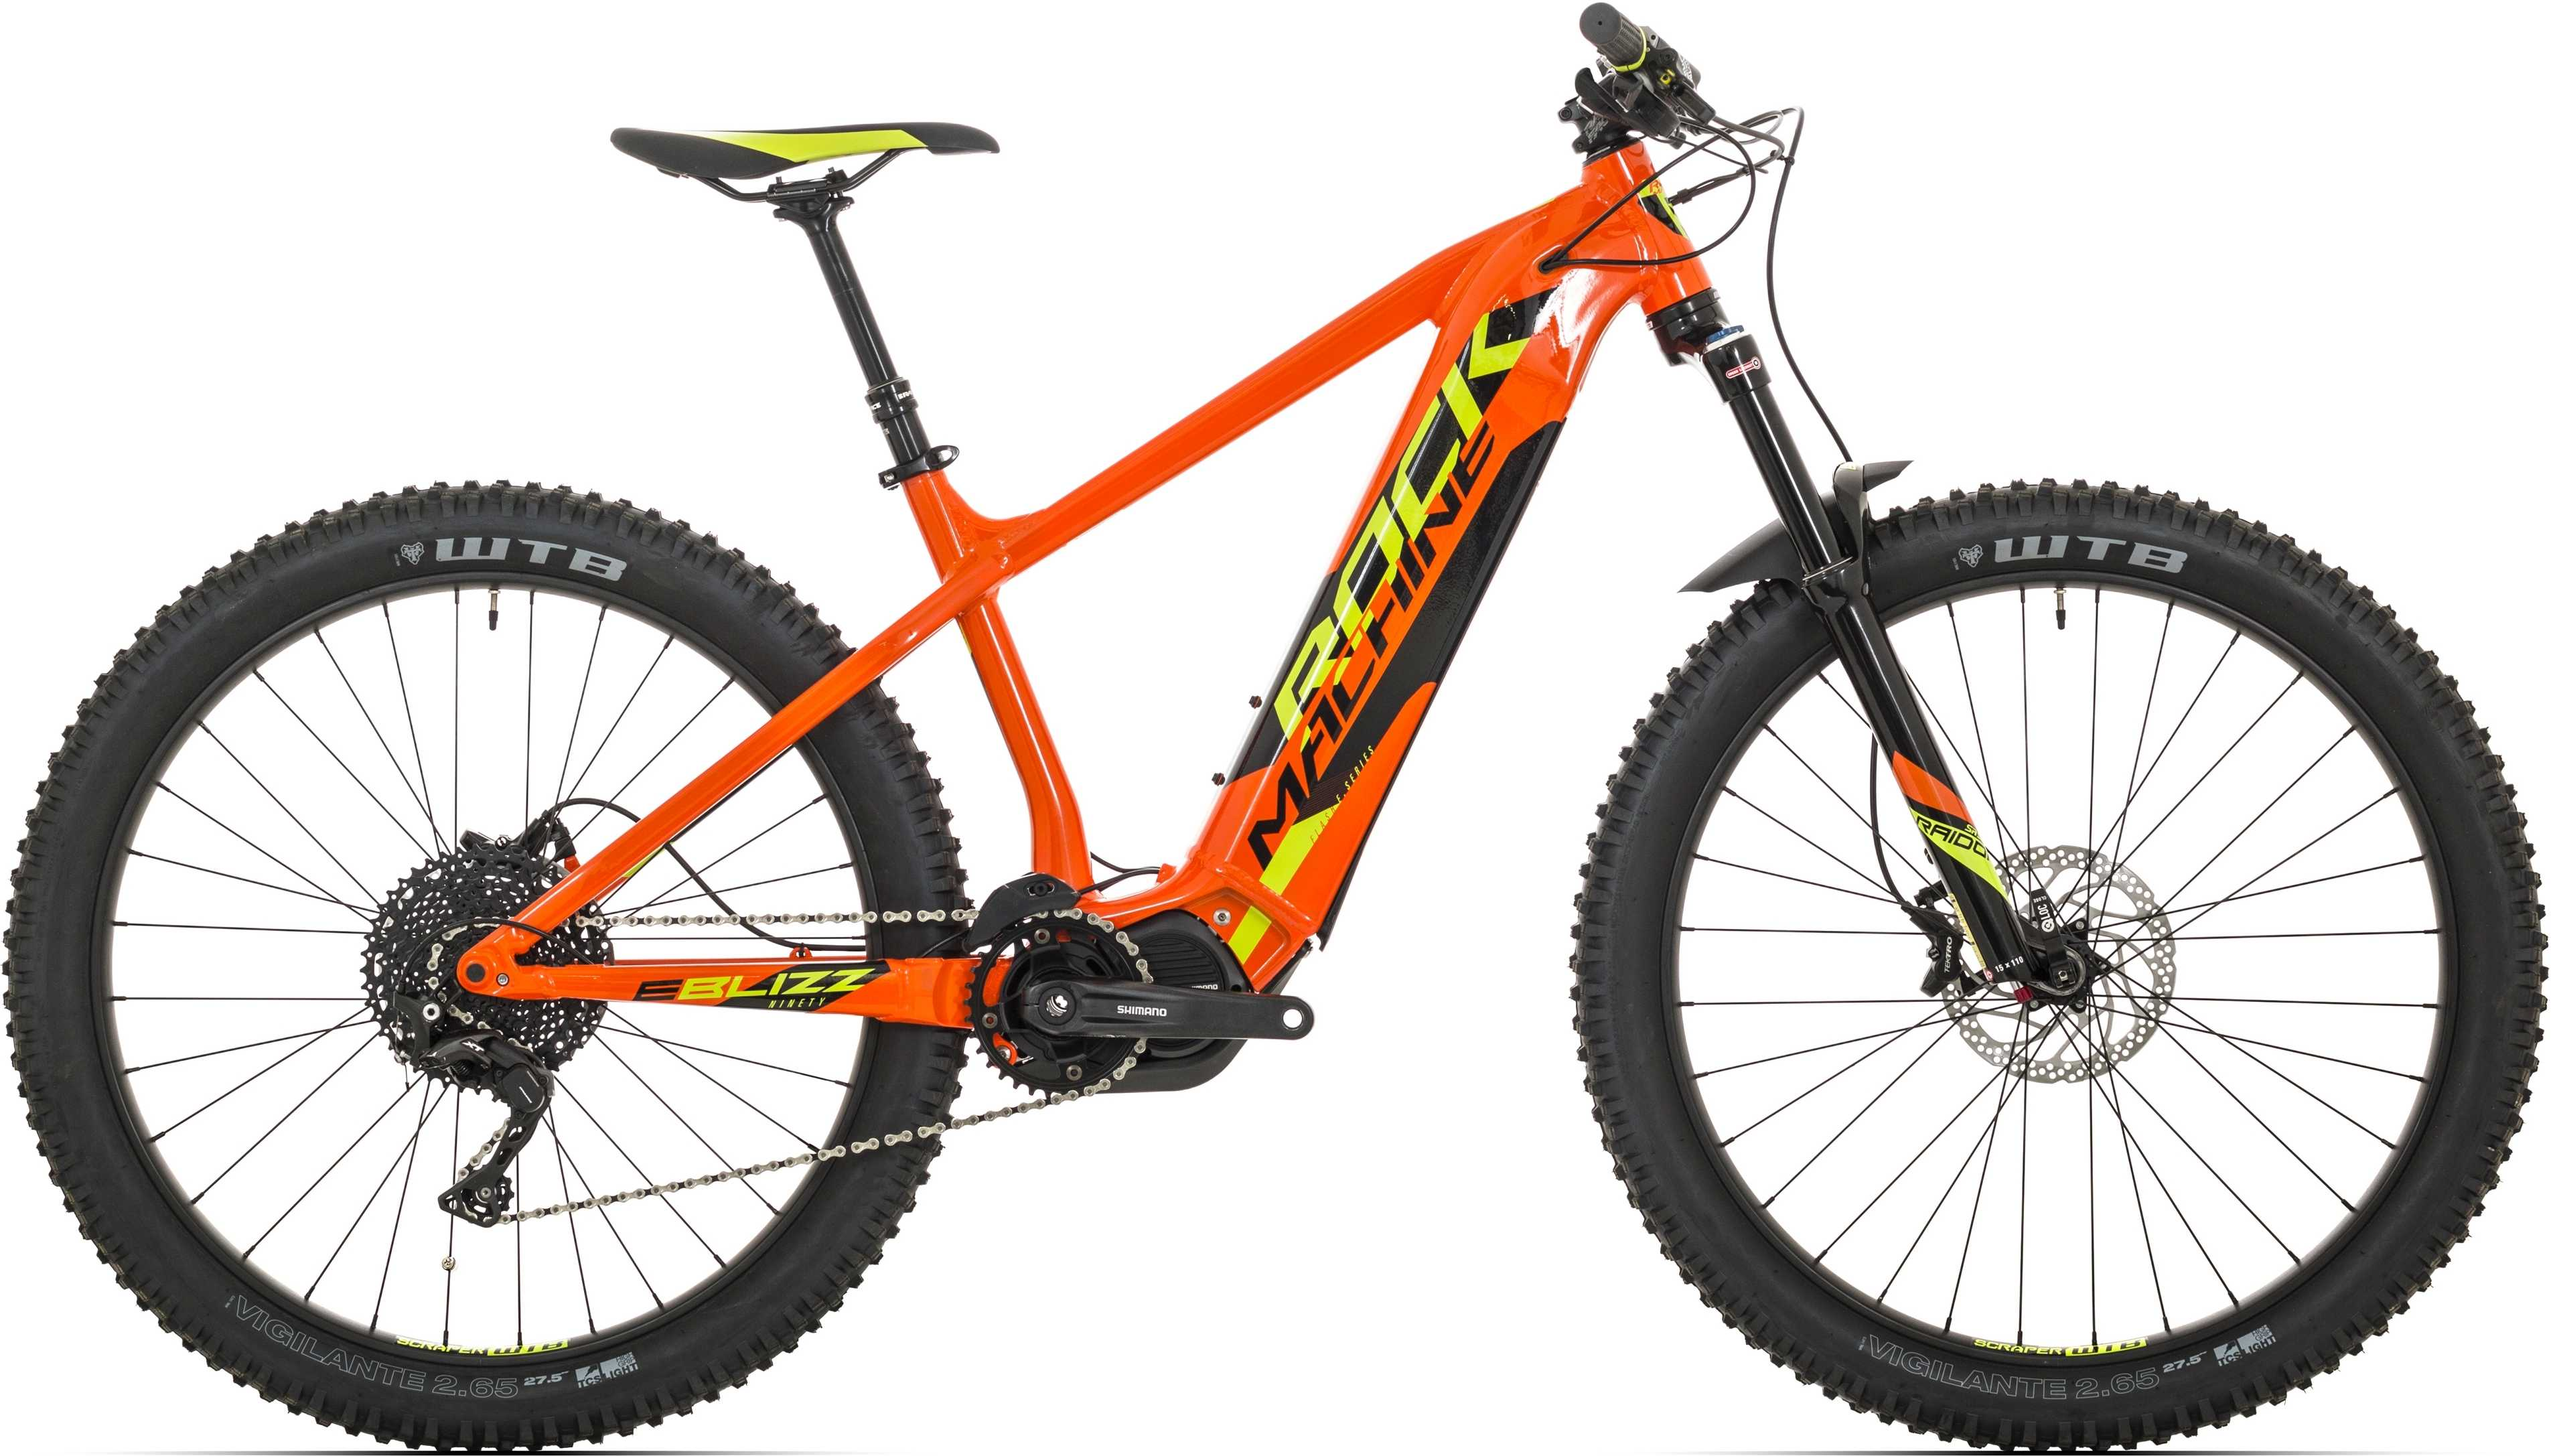 Rock Machine Blizz Int E90-27+ blankorange/gul/svart x-large